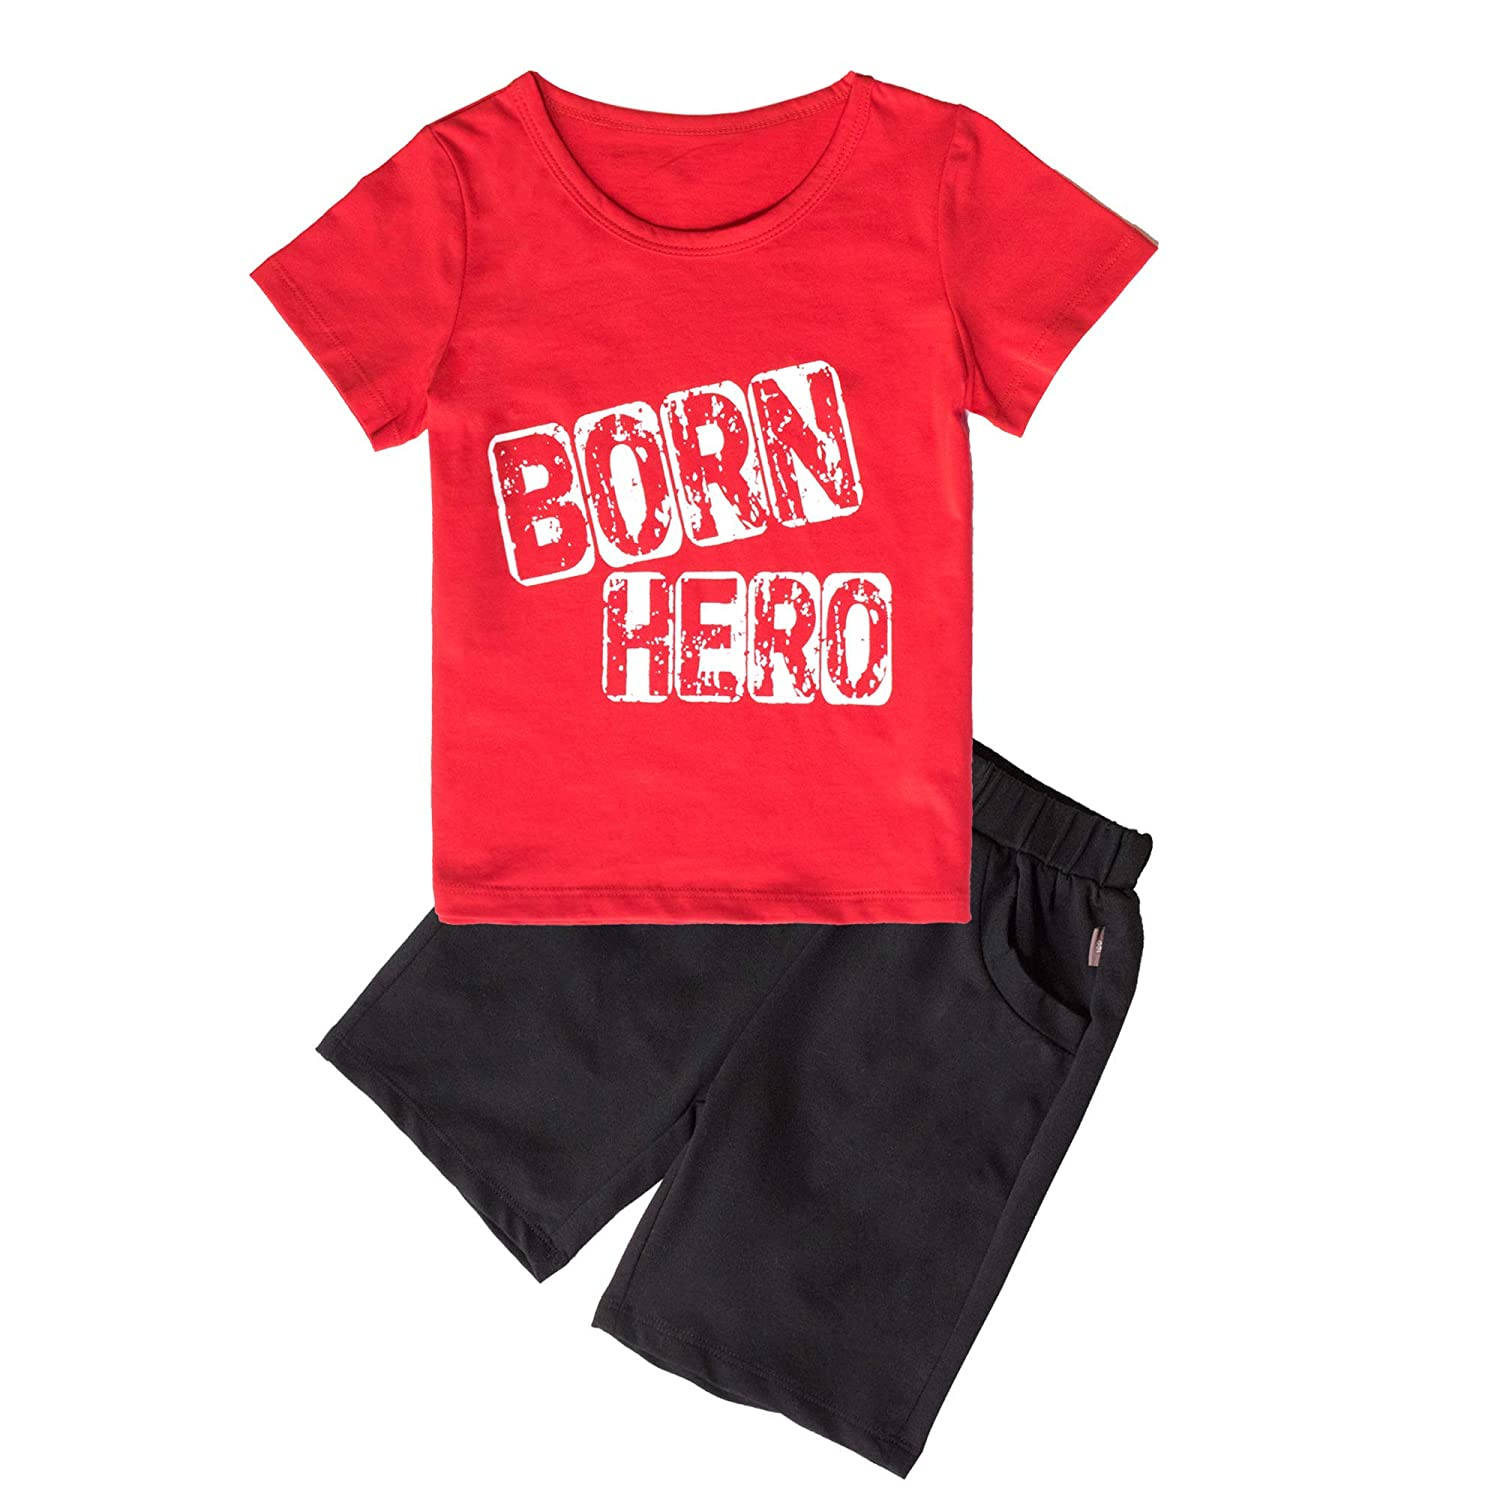 Little Boys Clothing Sets 2pcs Cotton T-Shirt and Shorts Boys Summer Kids Clothes Sets Outfits Suit